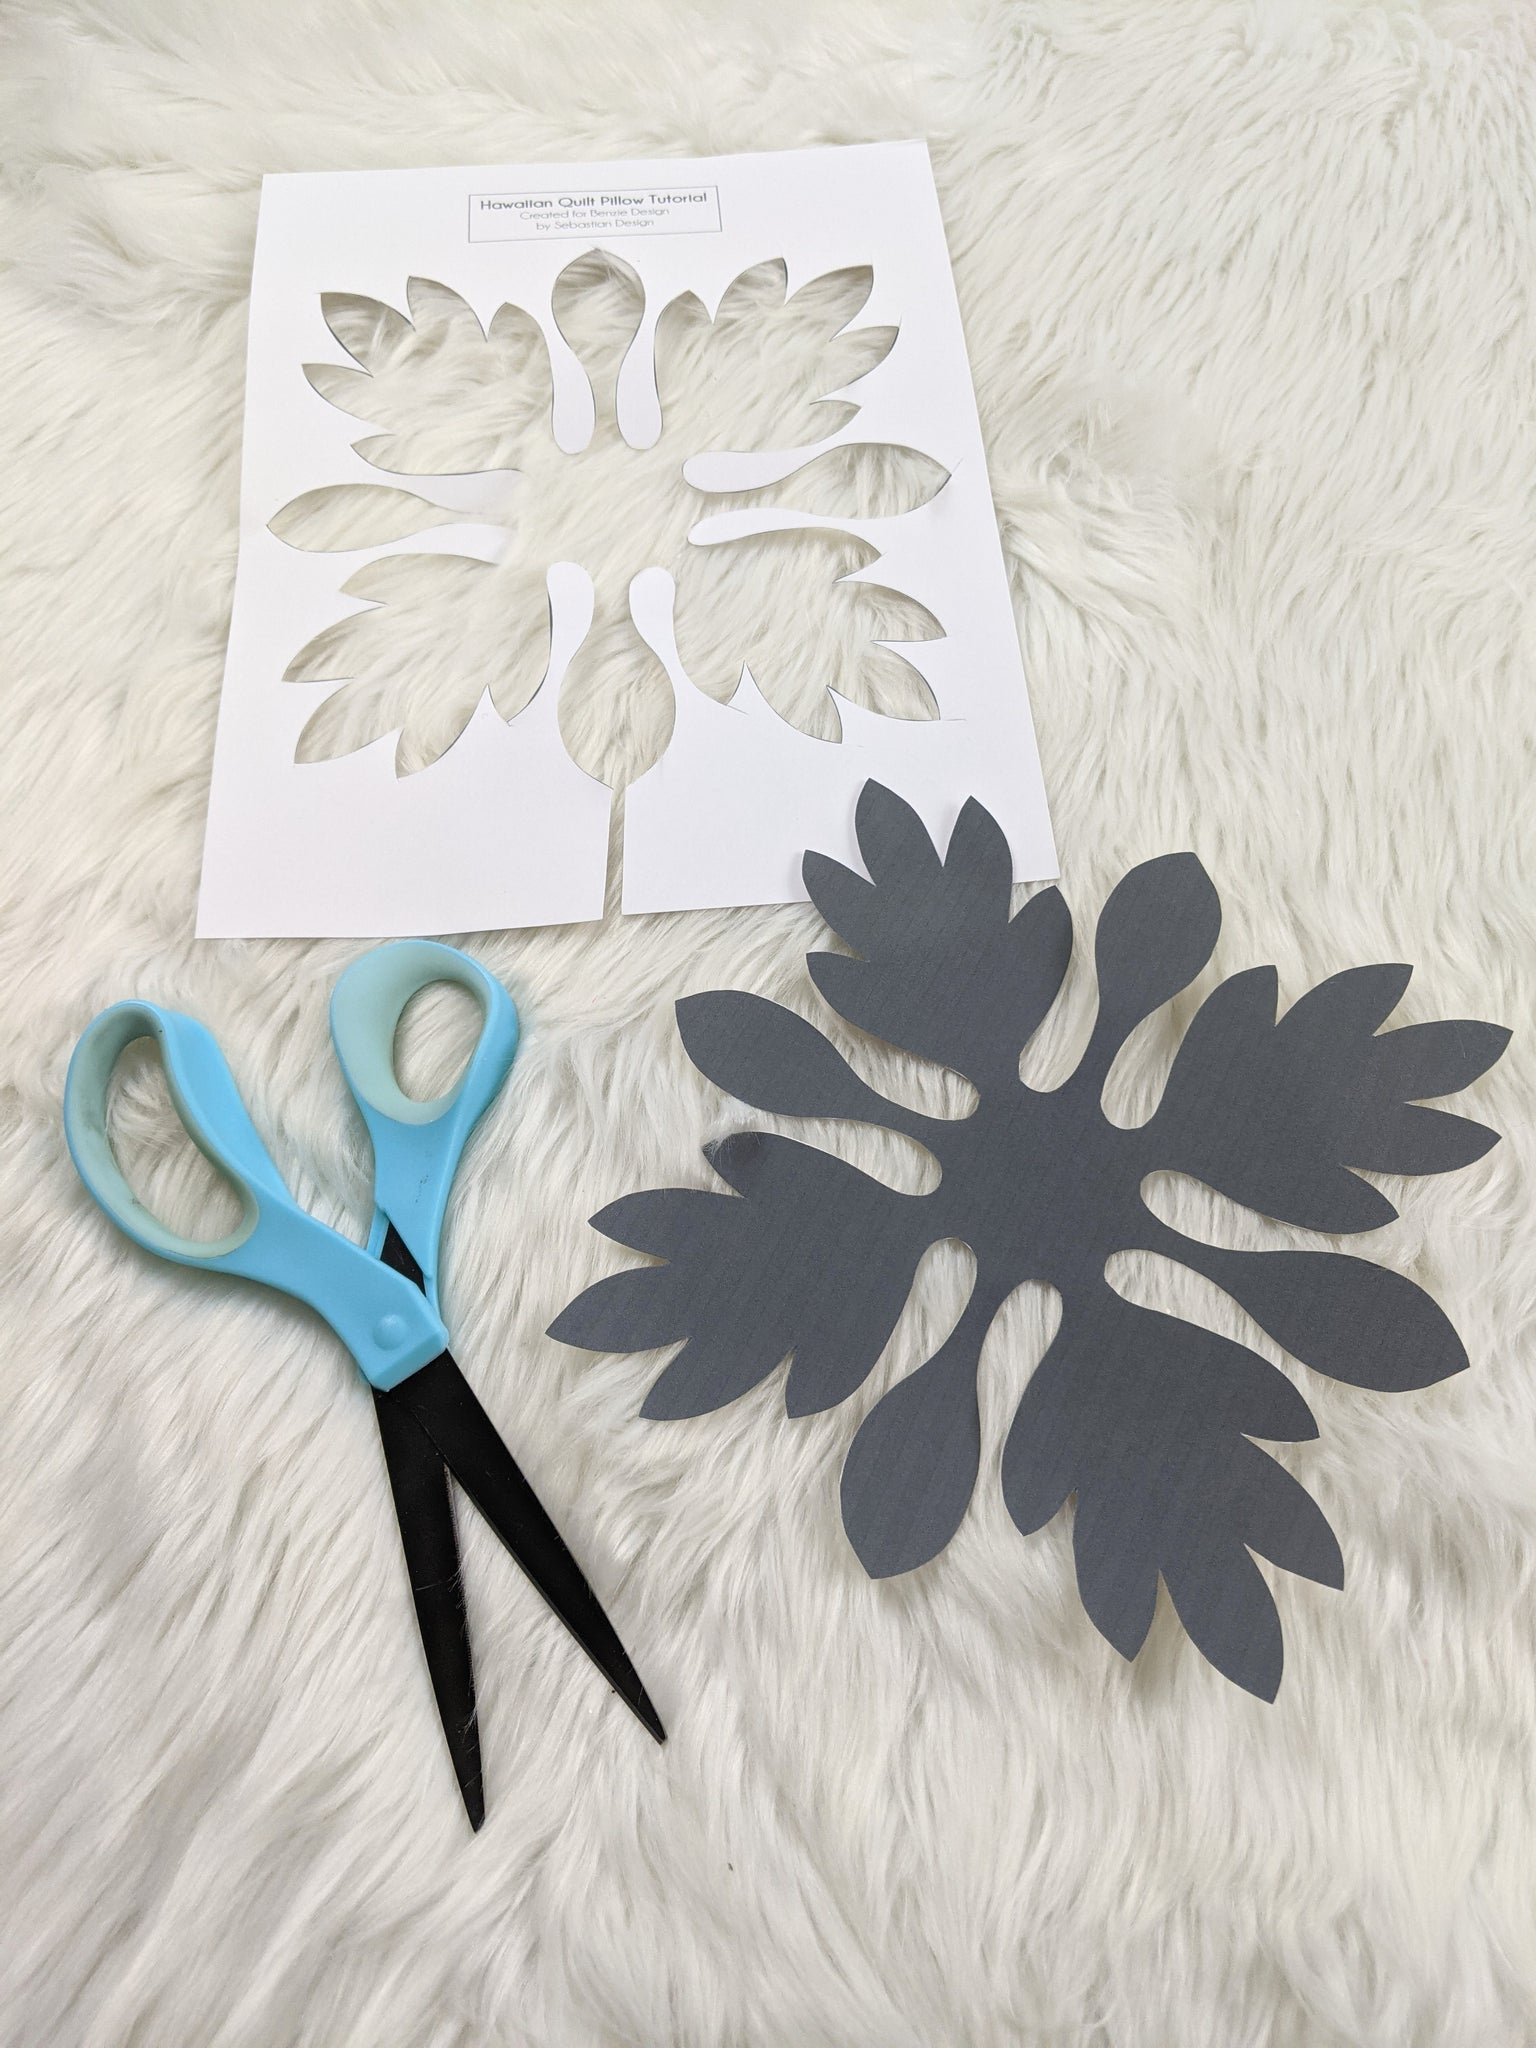 Cutting out decorative template